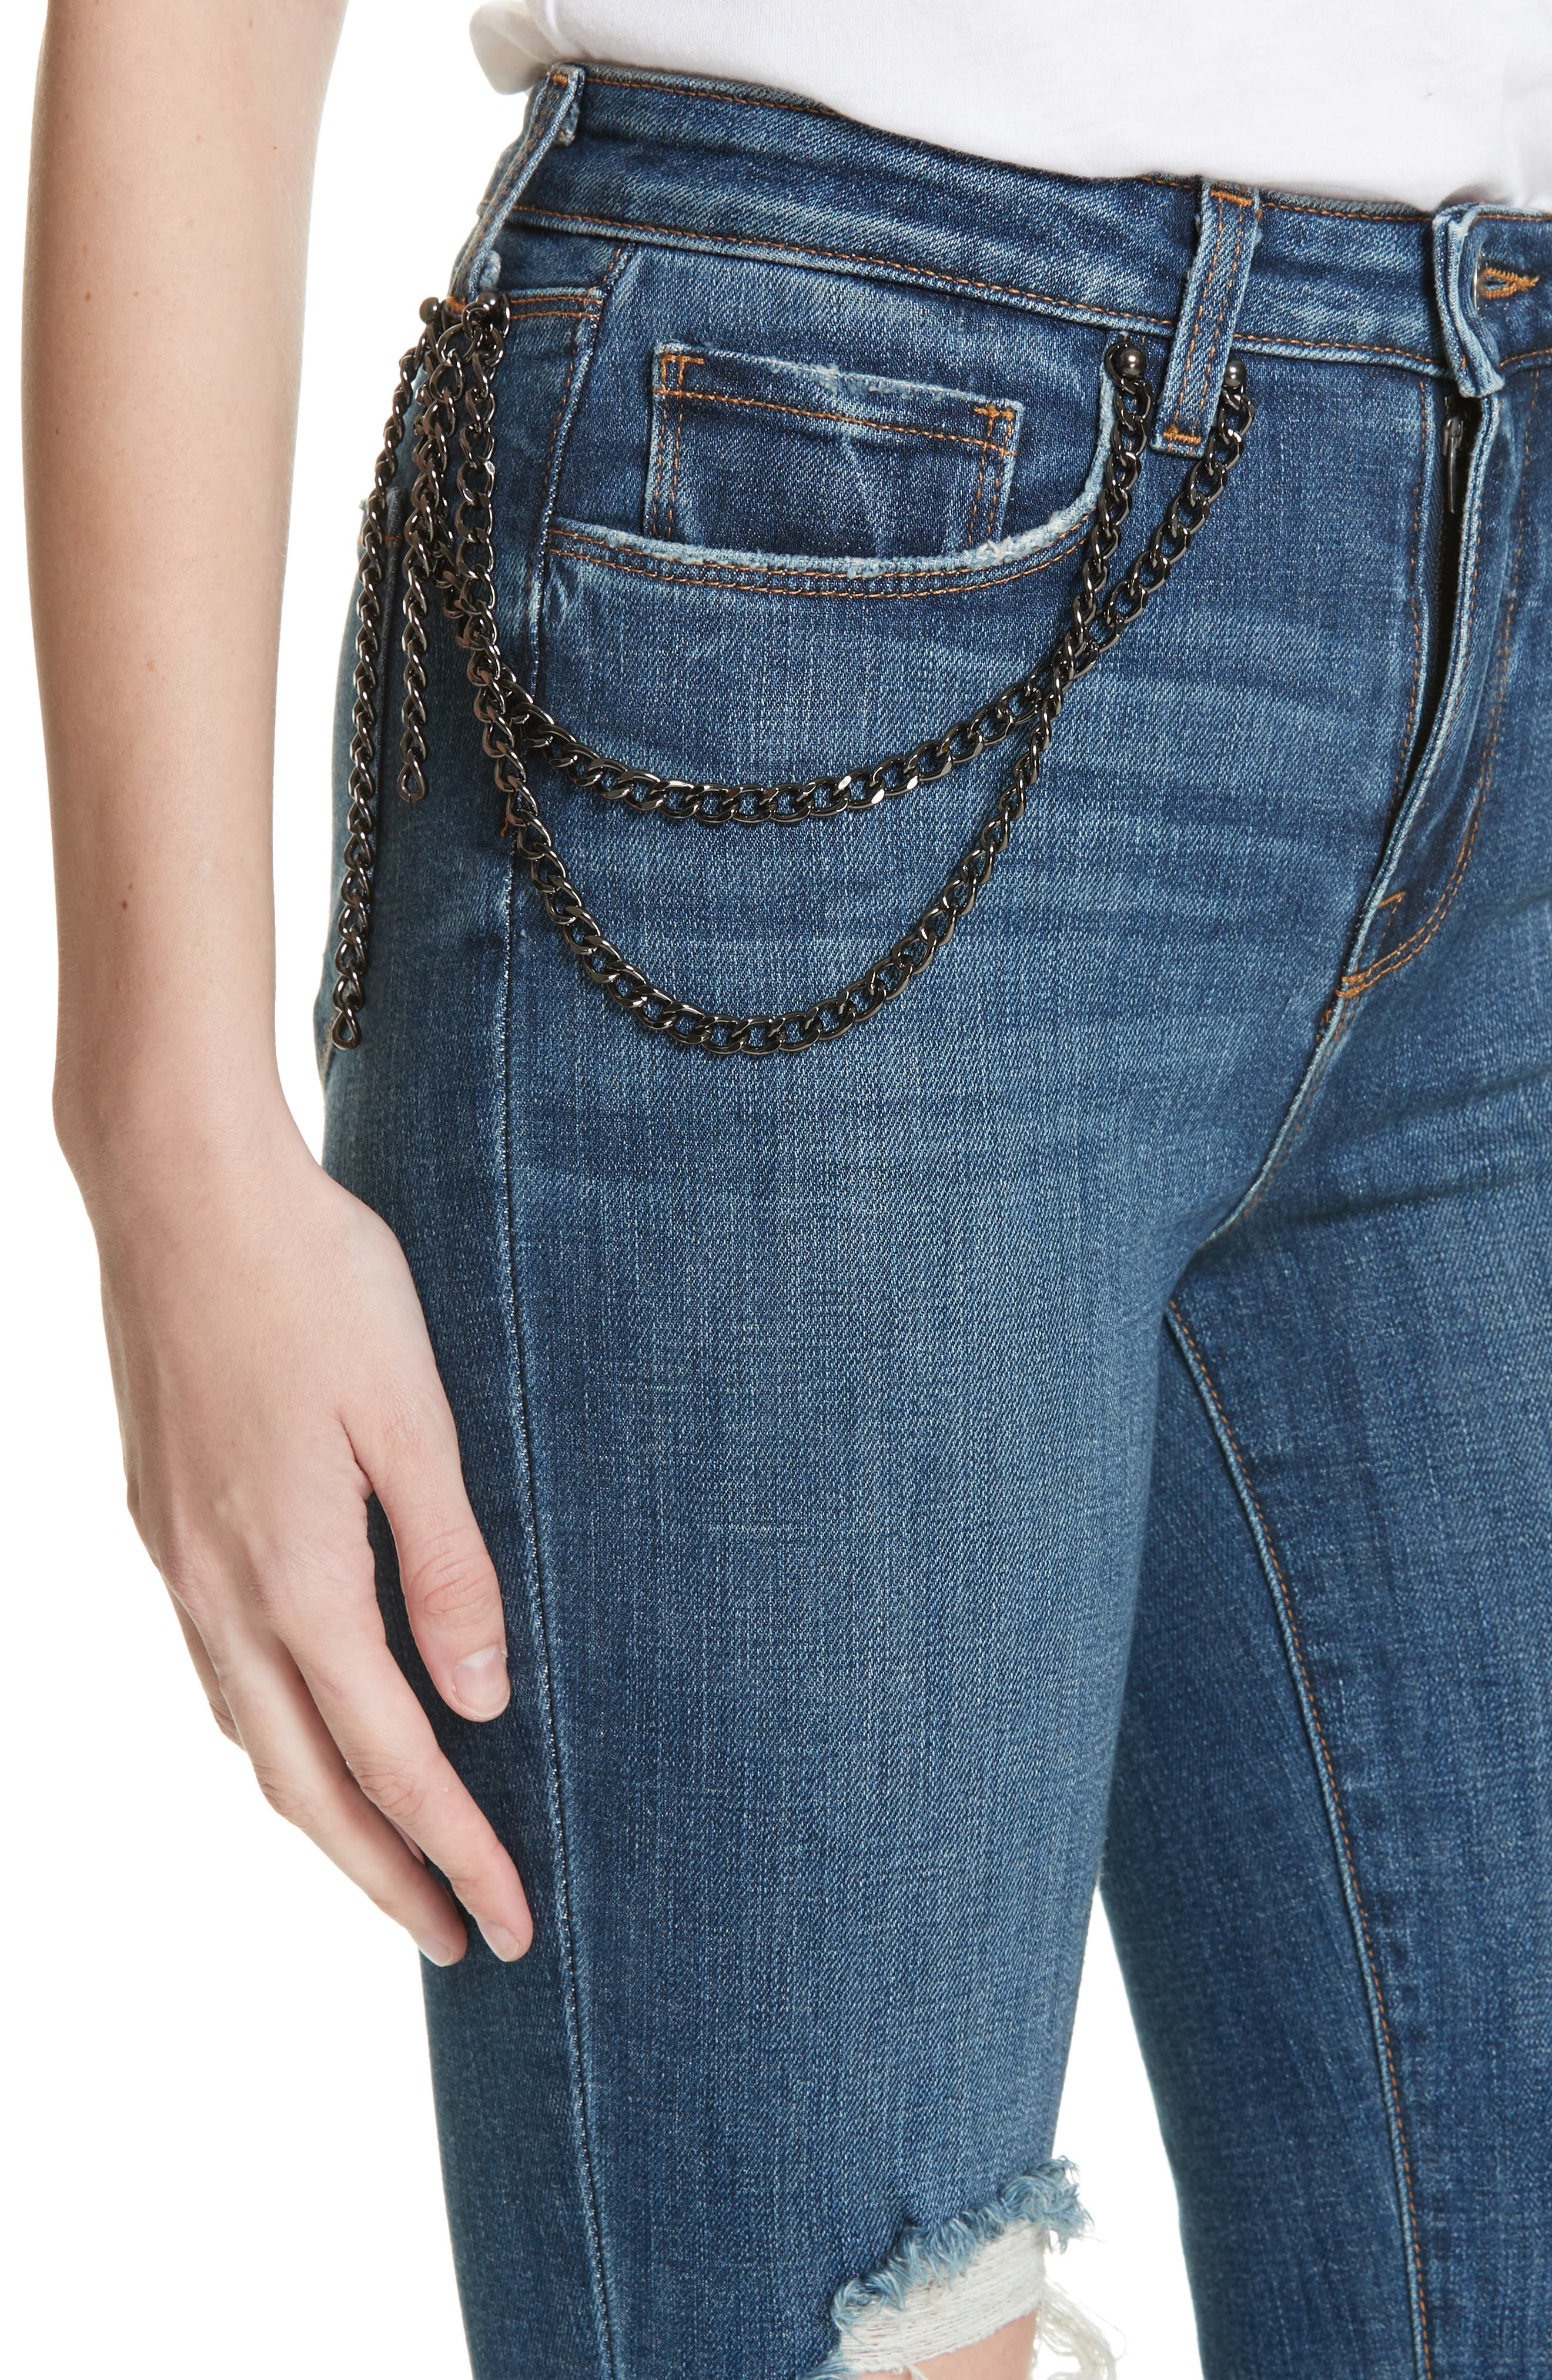 Luna Chain Detail Ripped Skinny Jeans,                             Alternate thumbnail 4, color,                             401